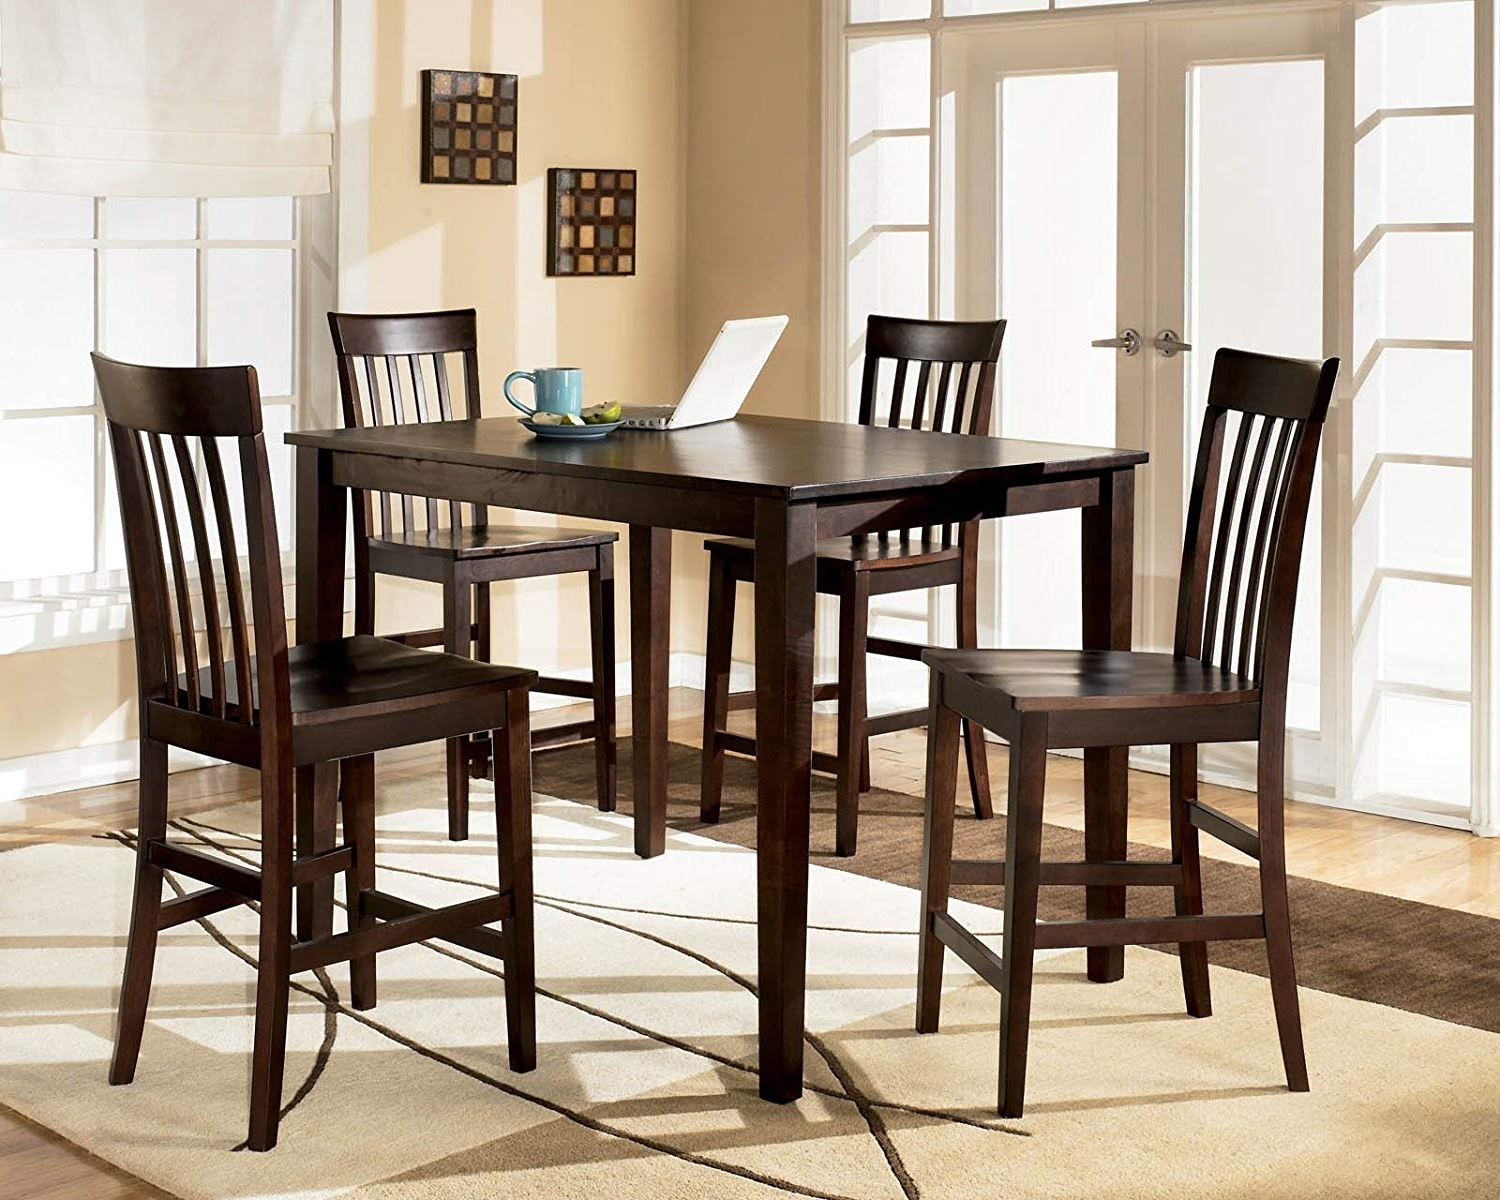 Hyland 5 Piece Counter Sets With Stools Throughout Trendy Amazon – Ashley Hyland D258 223 5 Piece Dining Room Set With 1 (Gallery 1 of 25)